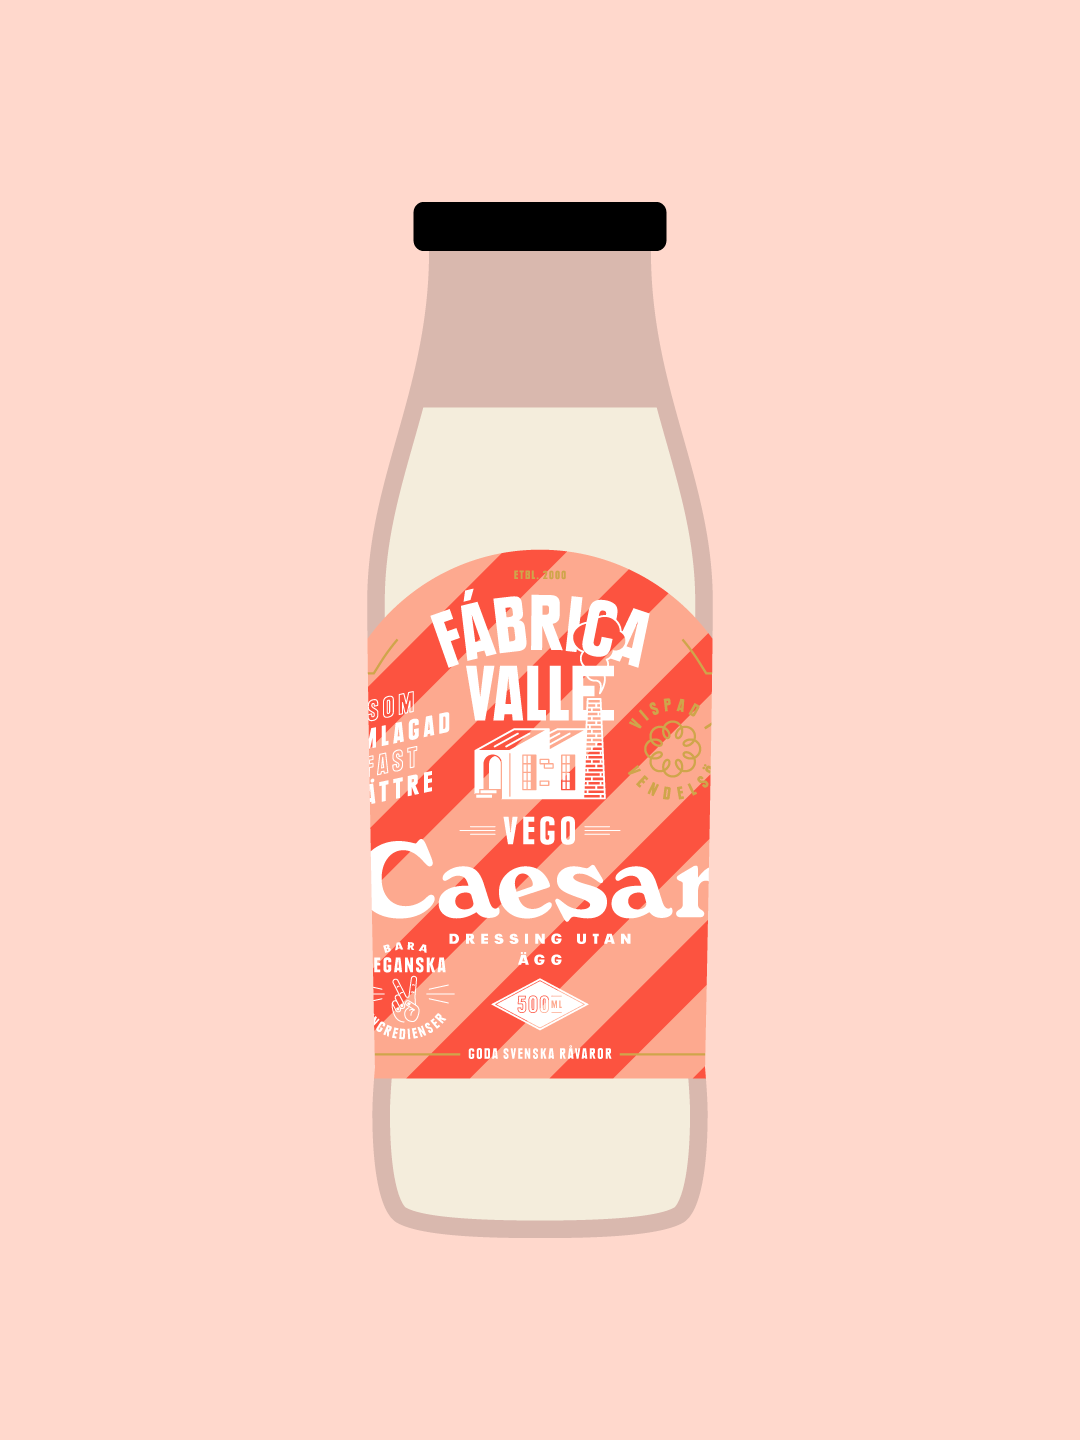 Fabrica_Valle_Illustration_Caesar_Vego_1080x1440px_72ppi.png